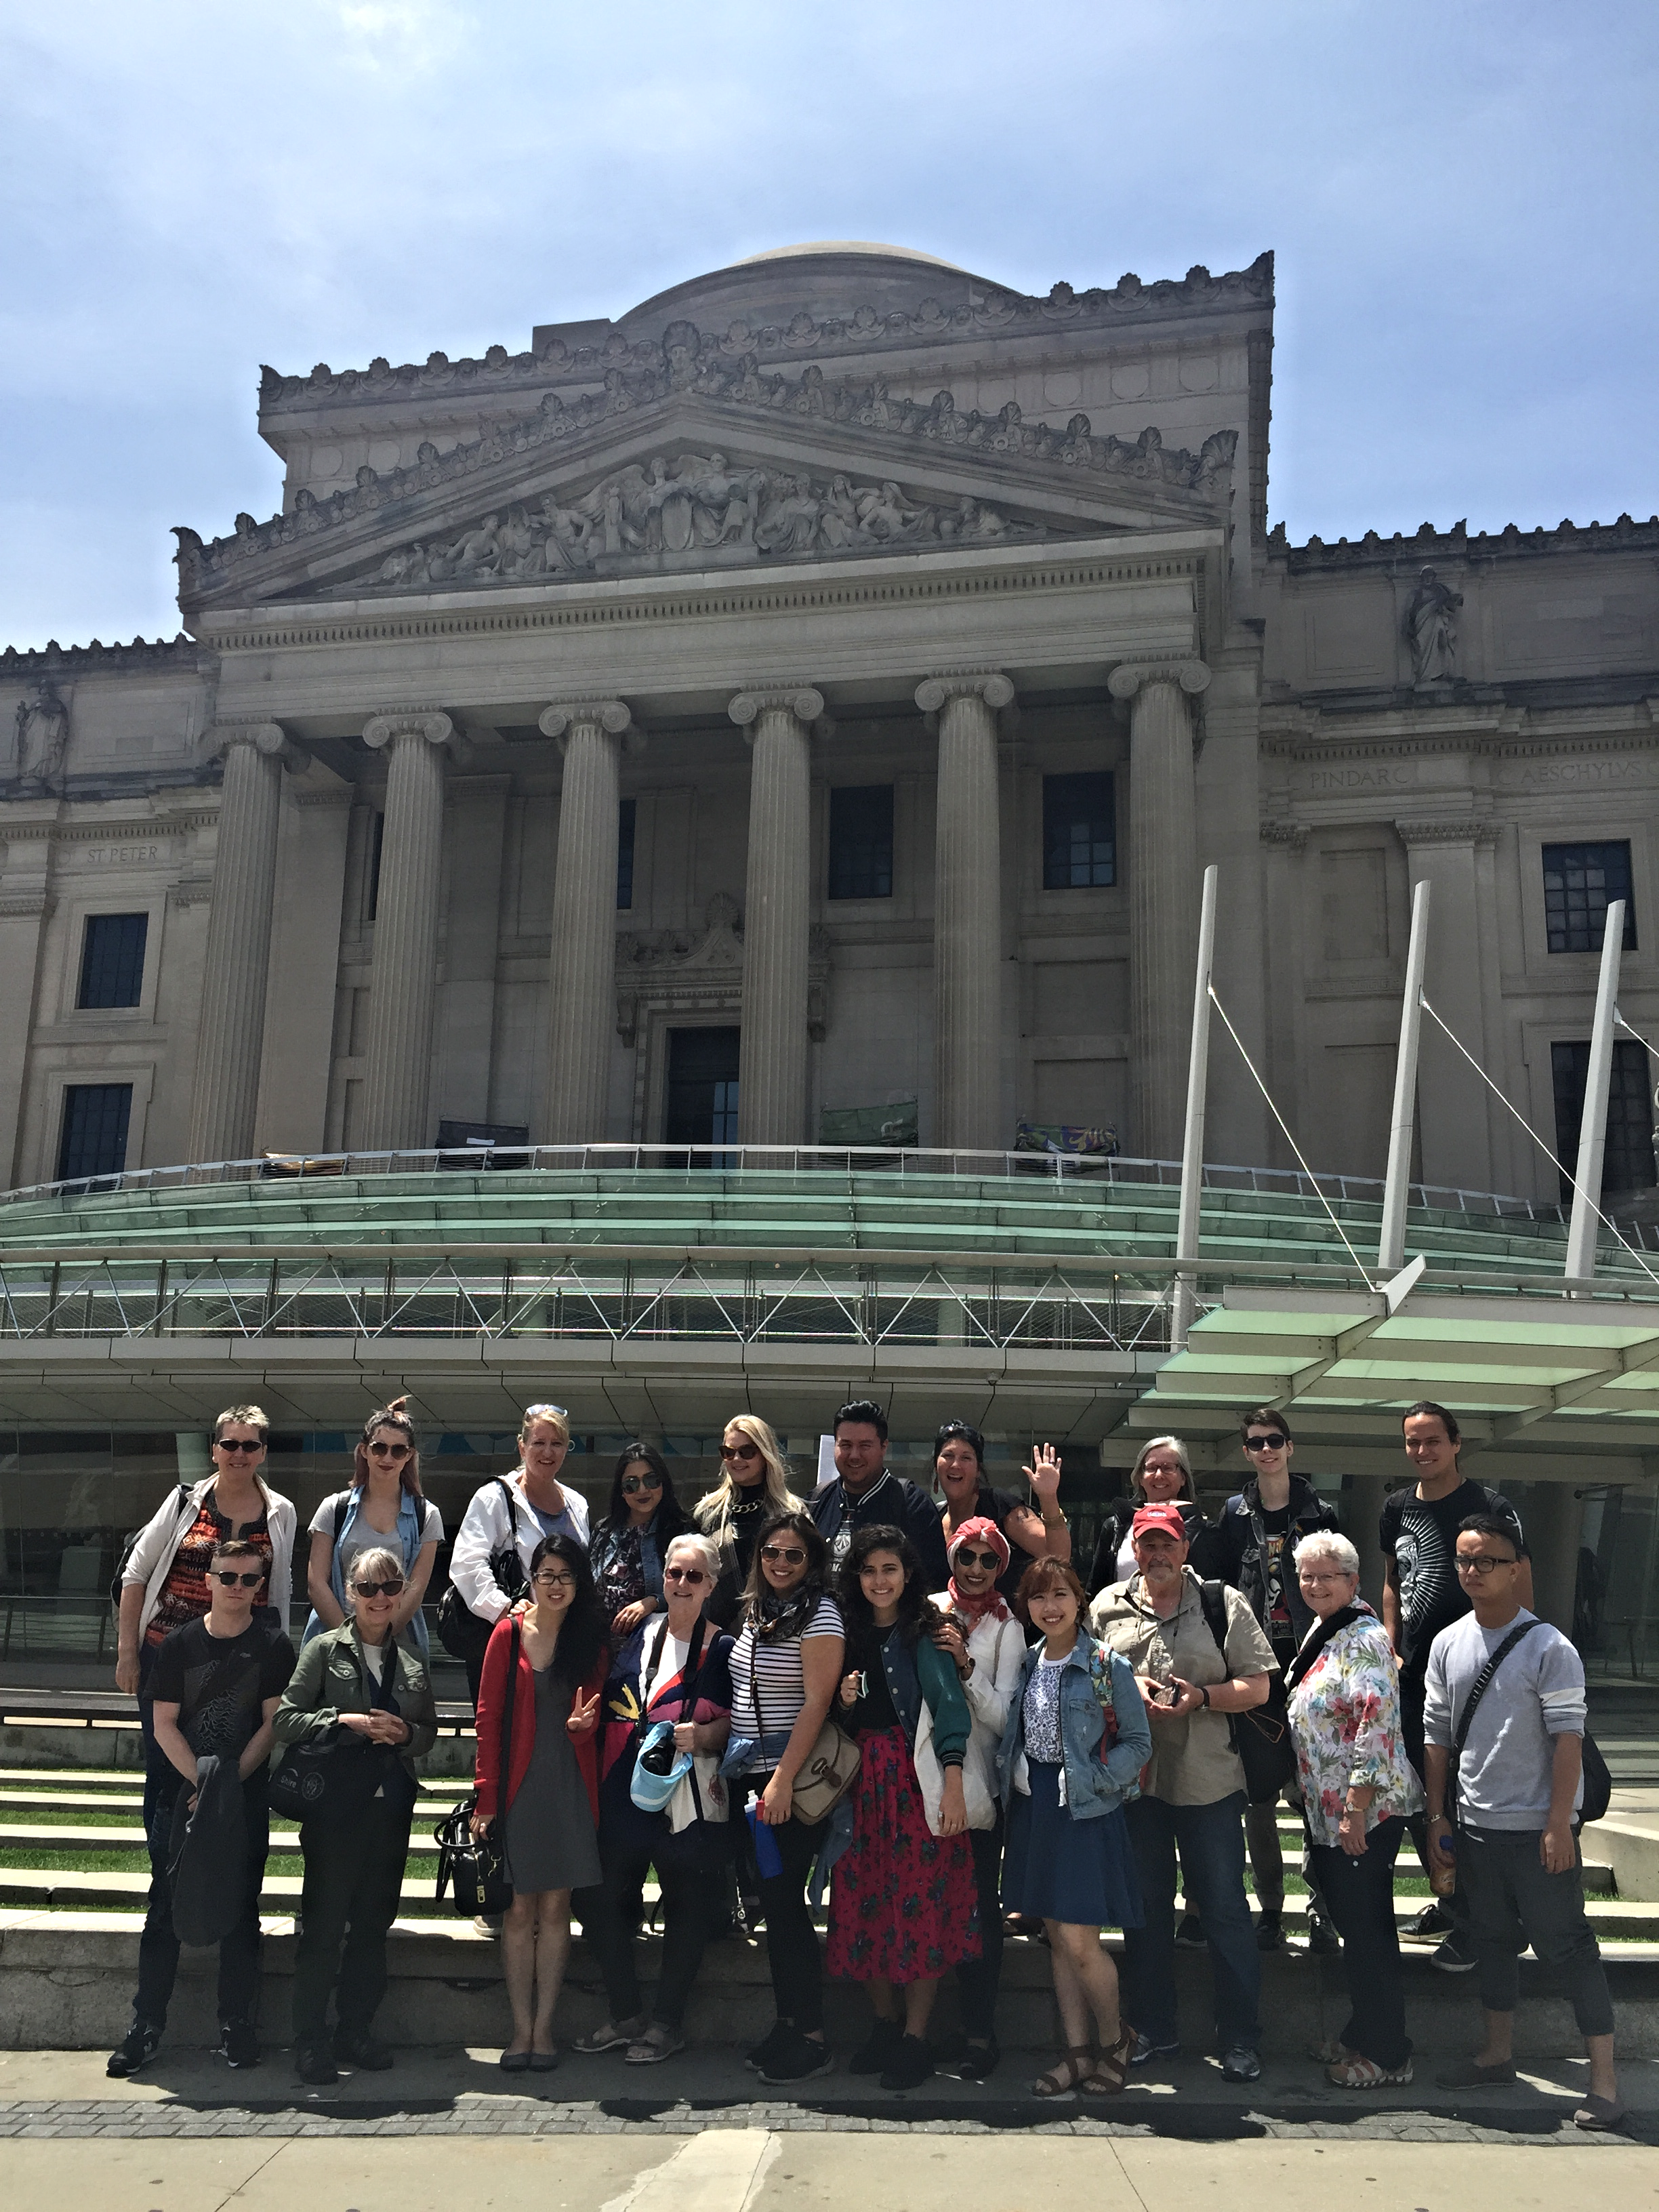 Group photograph in front of the majestic Brooklyn Museum. Merry is in the front row (fourth from the left) of the image.